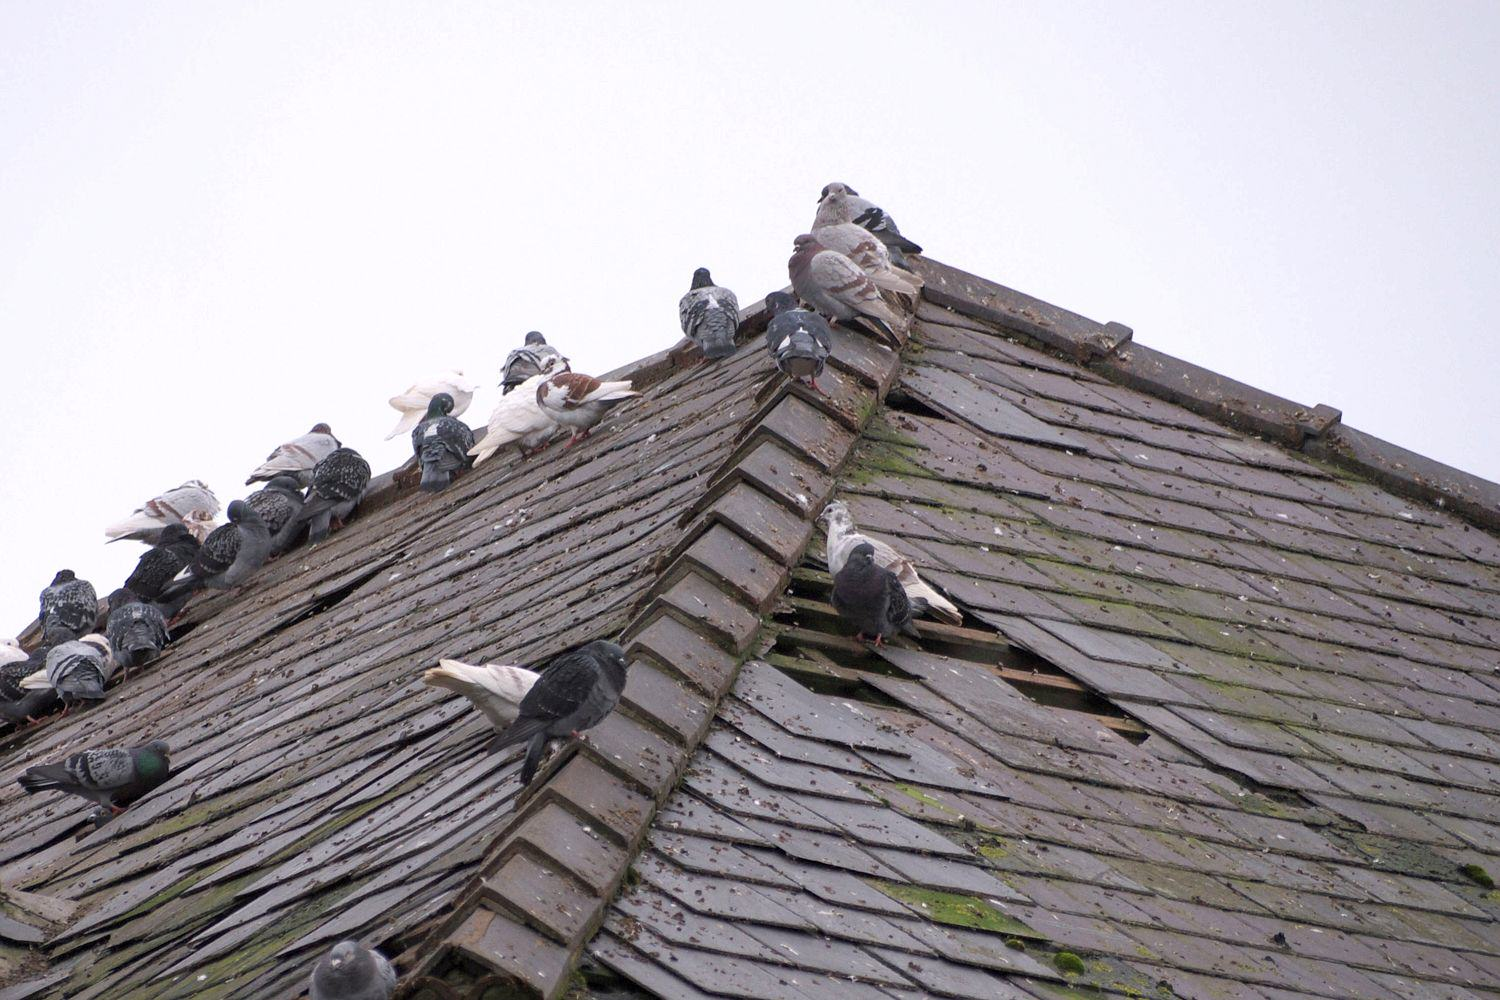 01 13231107 f2c56f 2602597a Cannabis Farm Discovered After Pigeons Take A Liking To Warm Roof